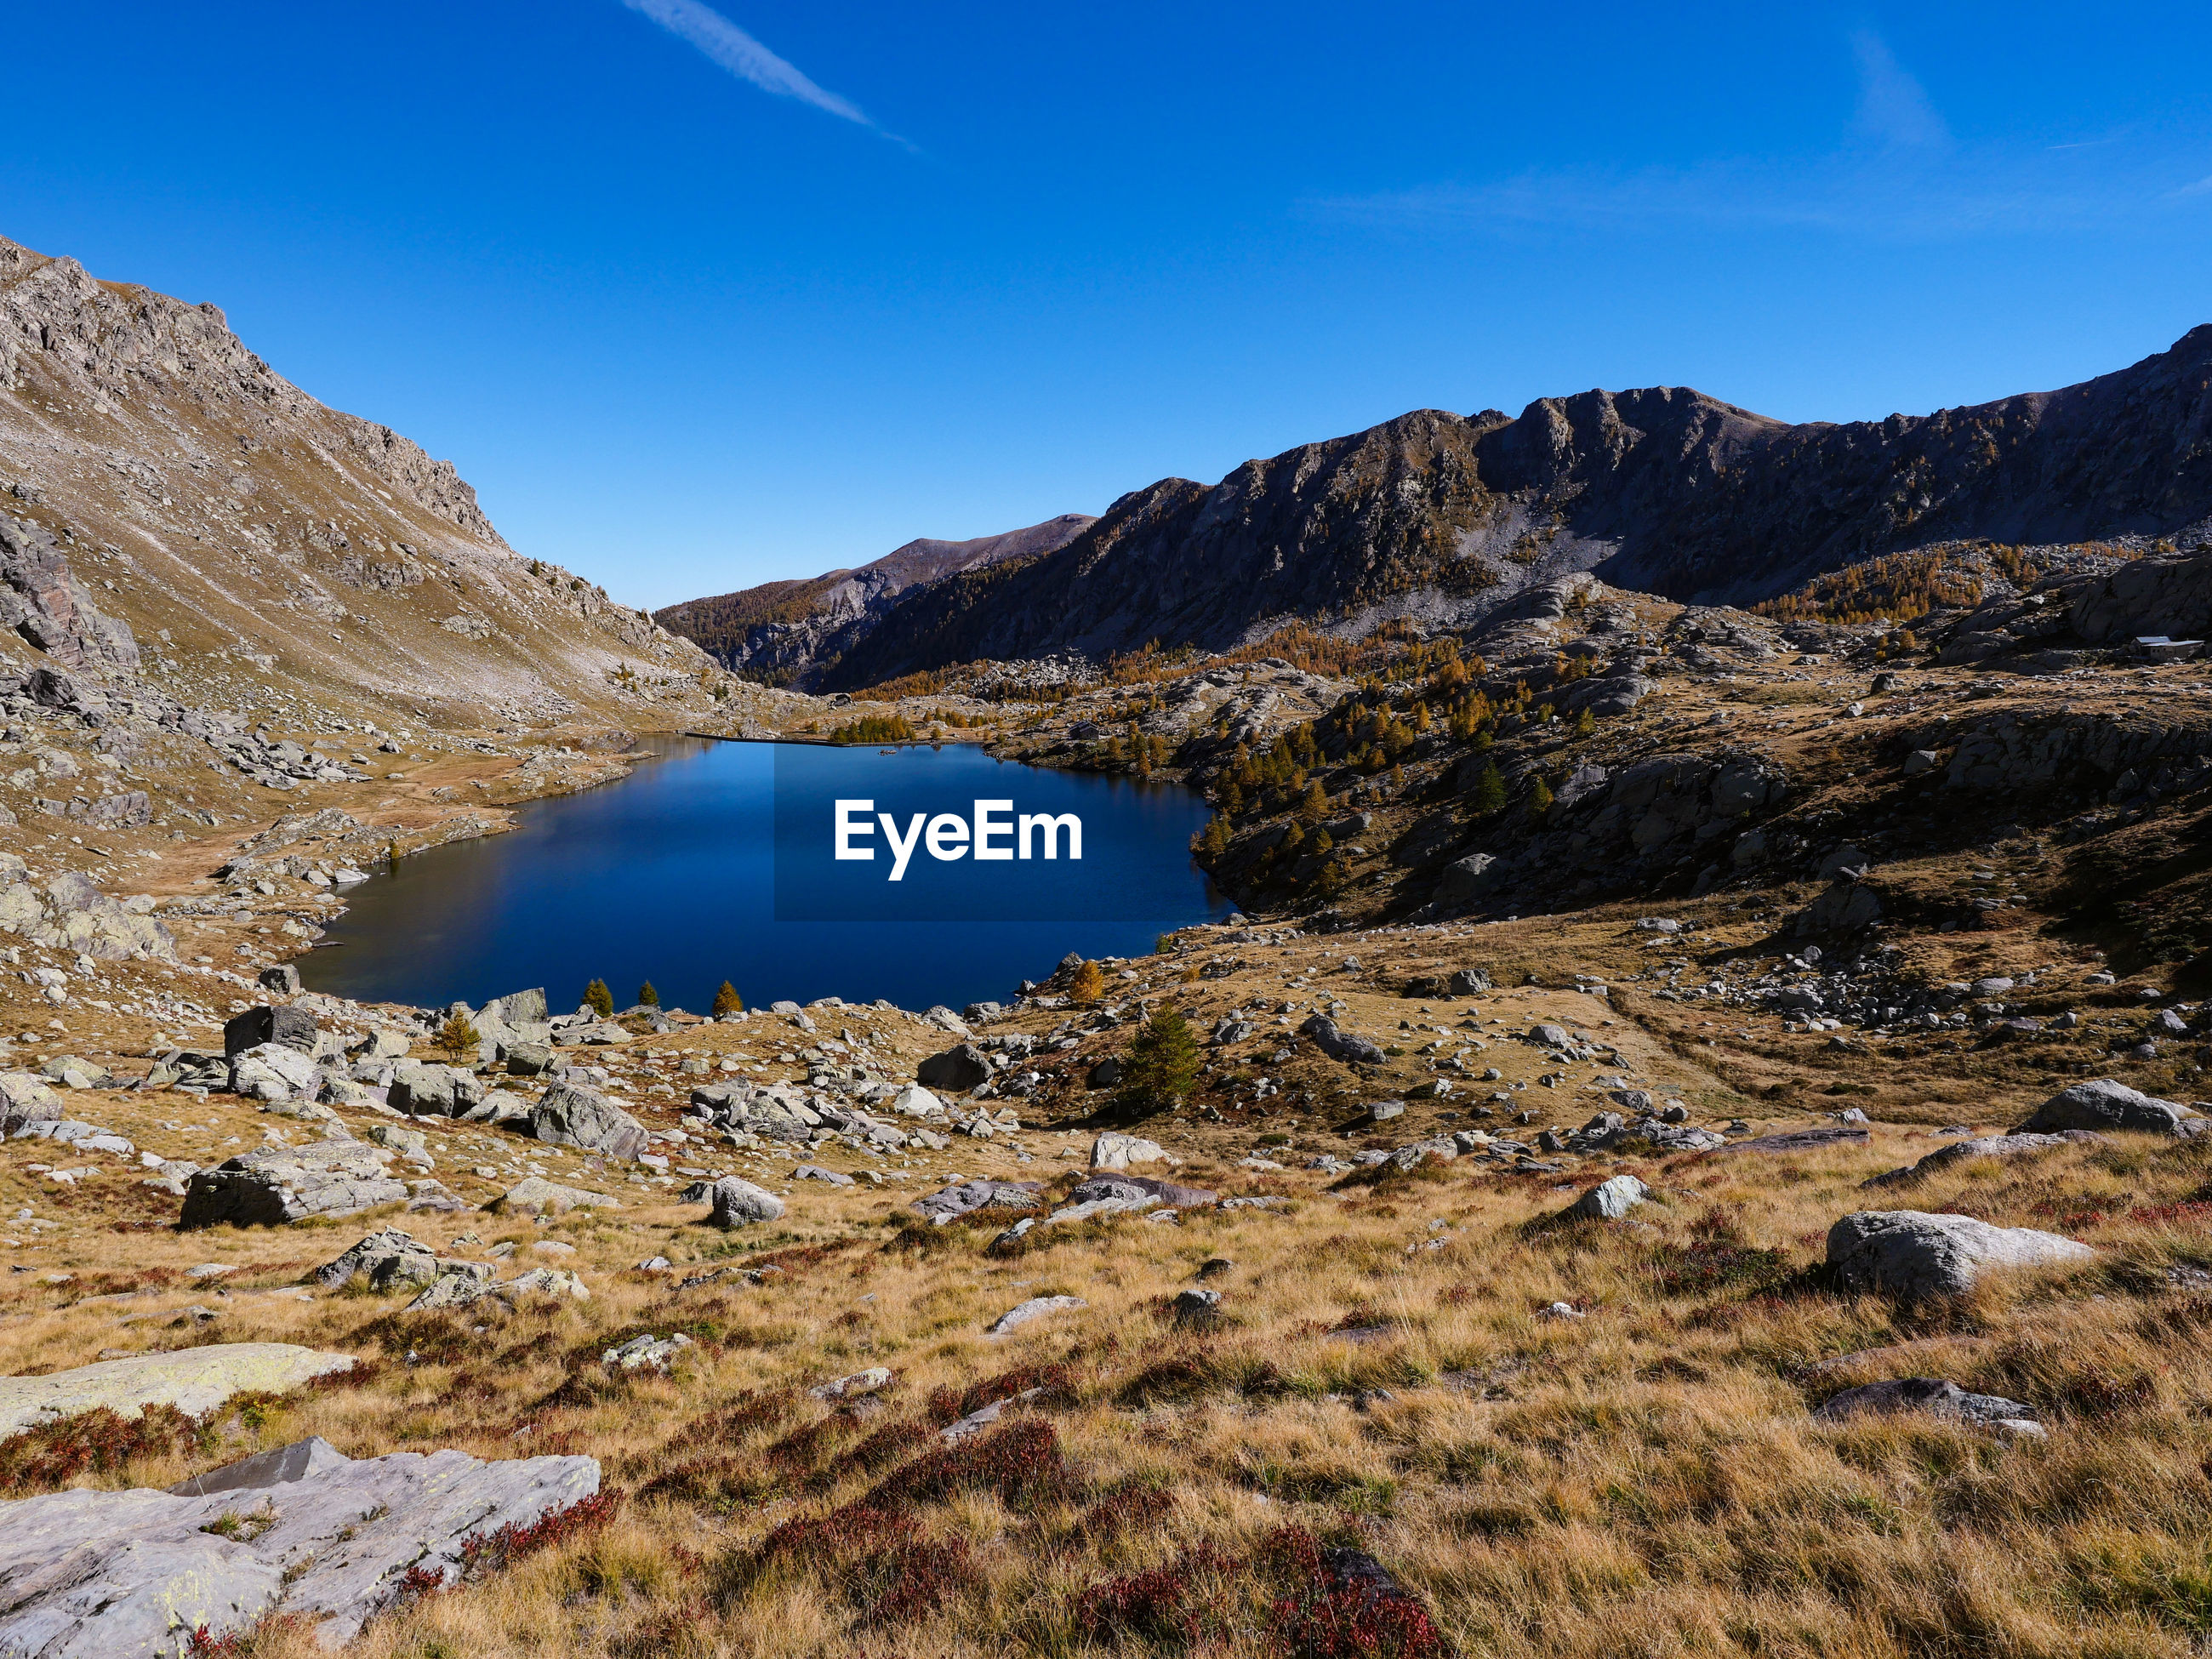 SCENIC VIEW OF LAKE AND MOUNTAIN AGAINST BLUE SKY